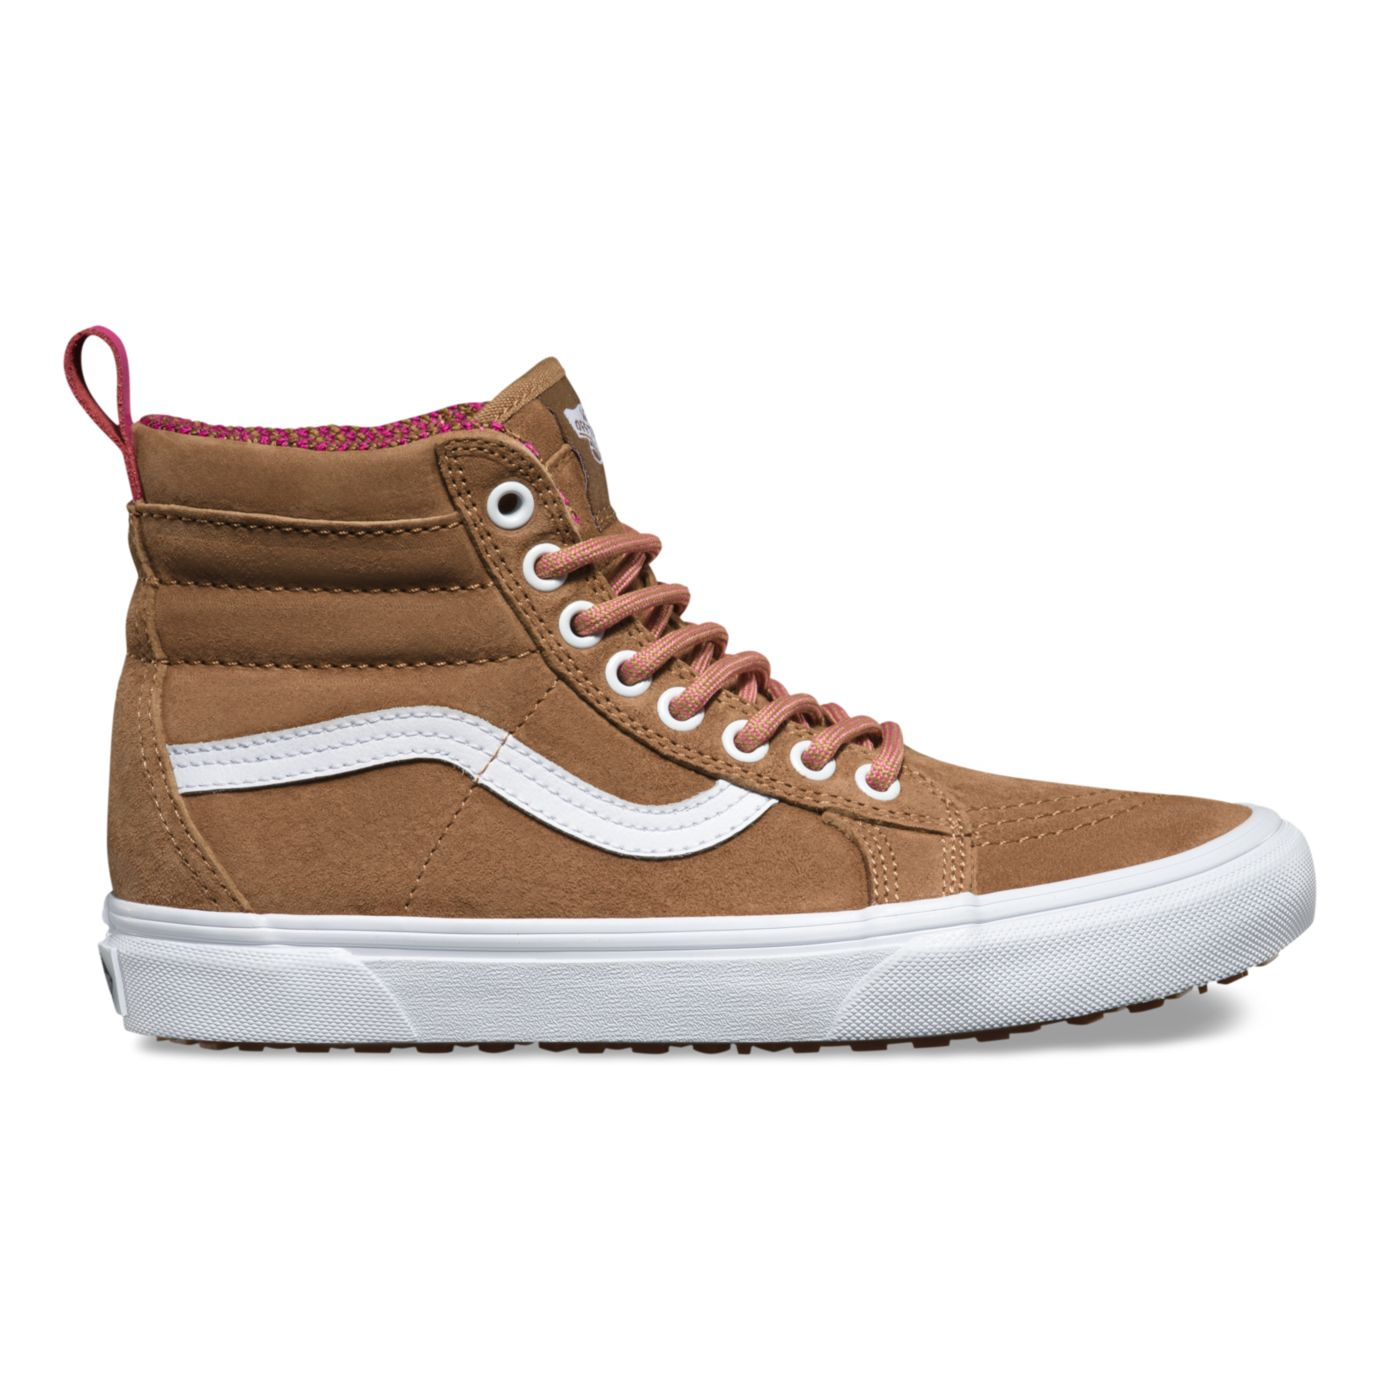 352640146a9807 Vans Expands All Weather MTE Apparel and Footwear Collection